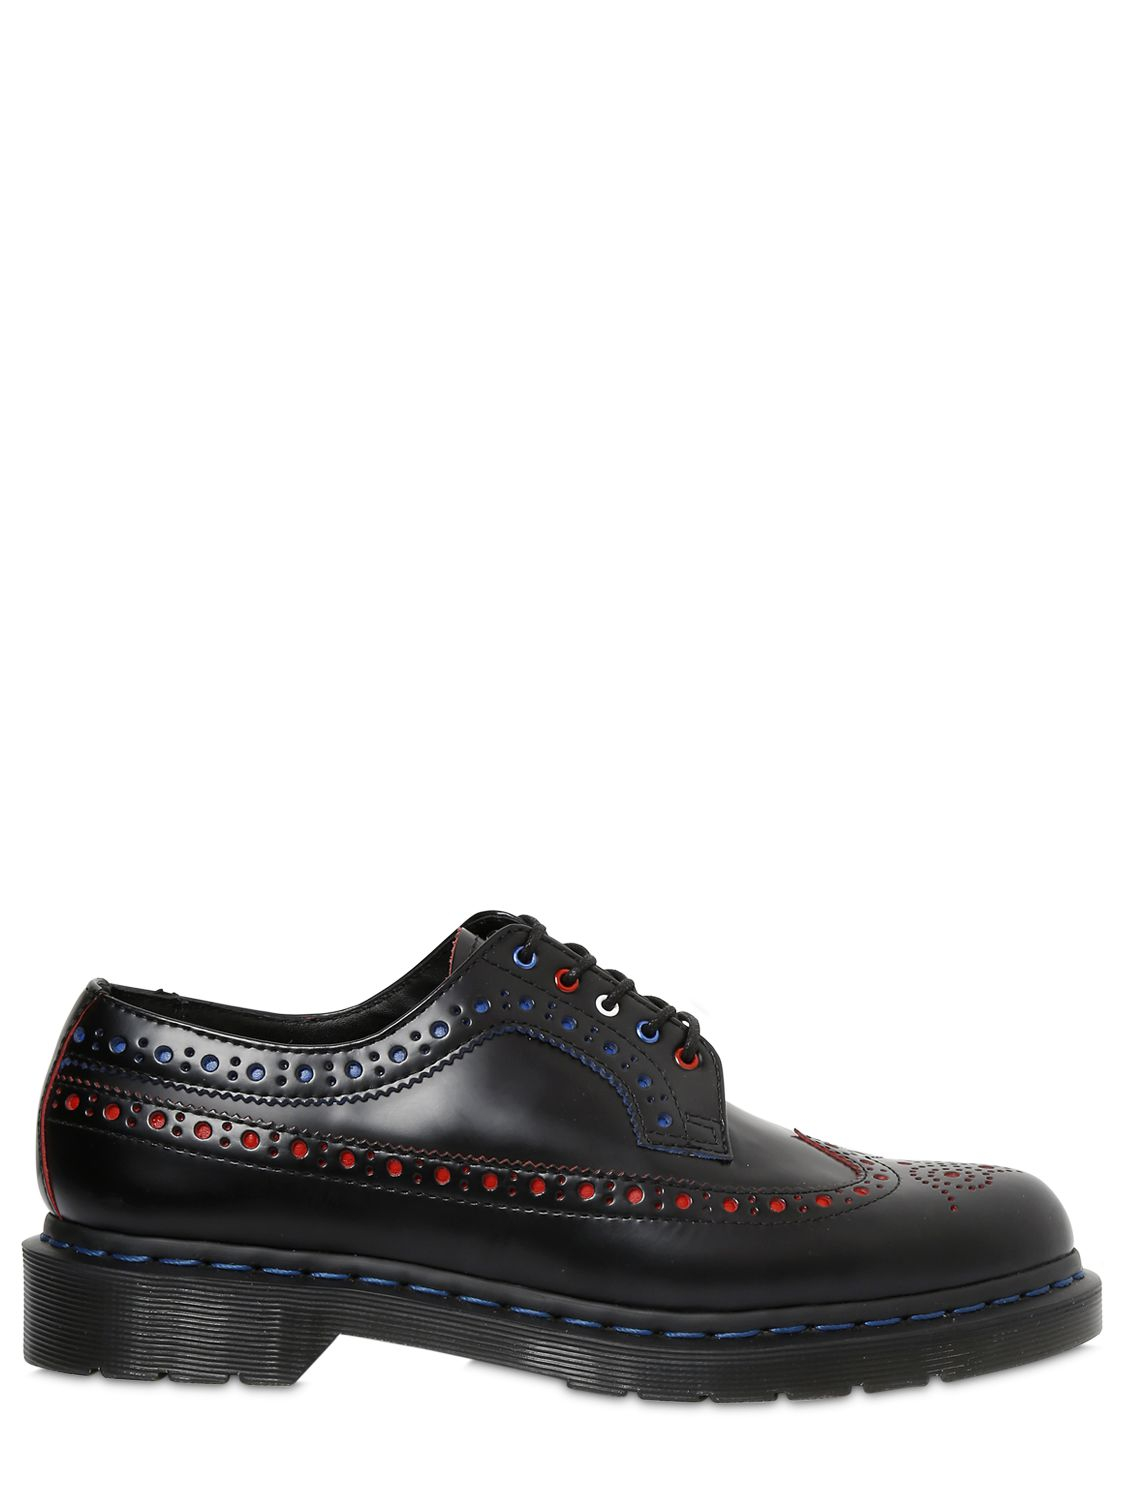 Dr. Martens Multicolor Leather Brogue Lace-Up Shoes in Black for Men